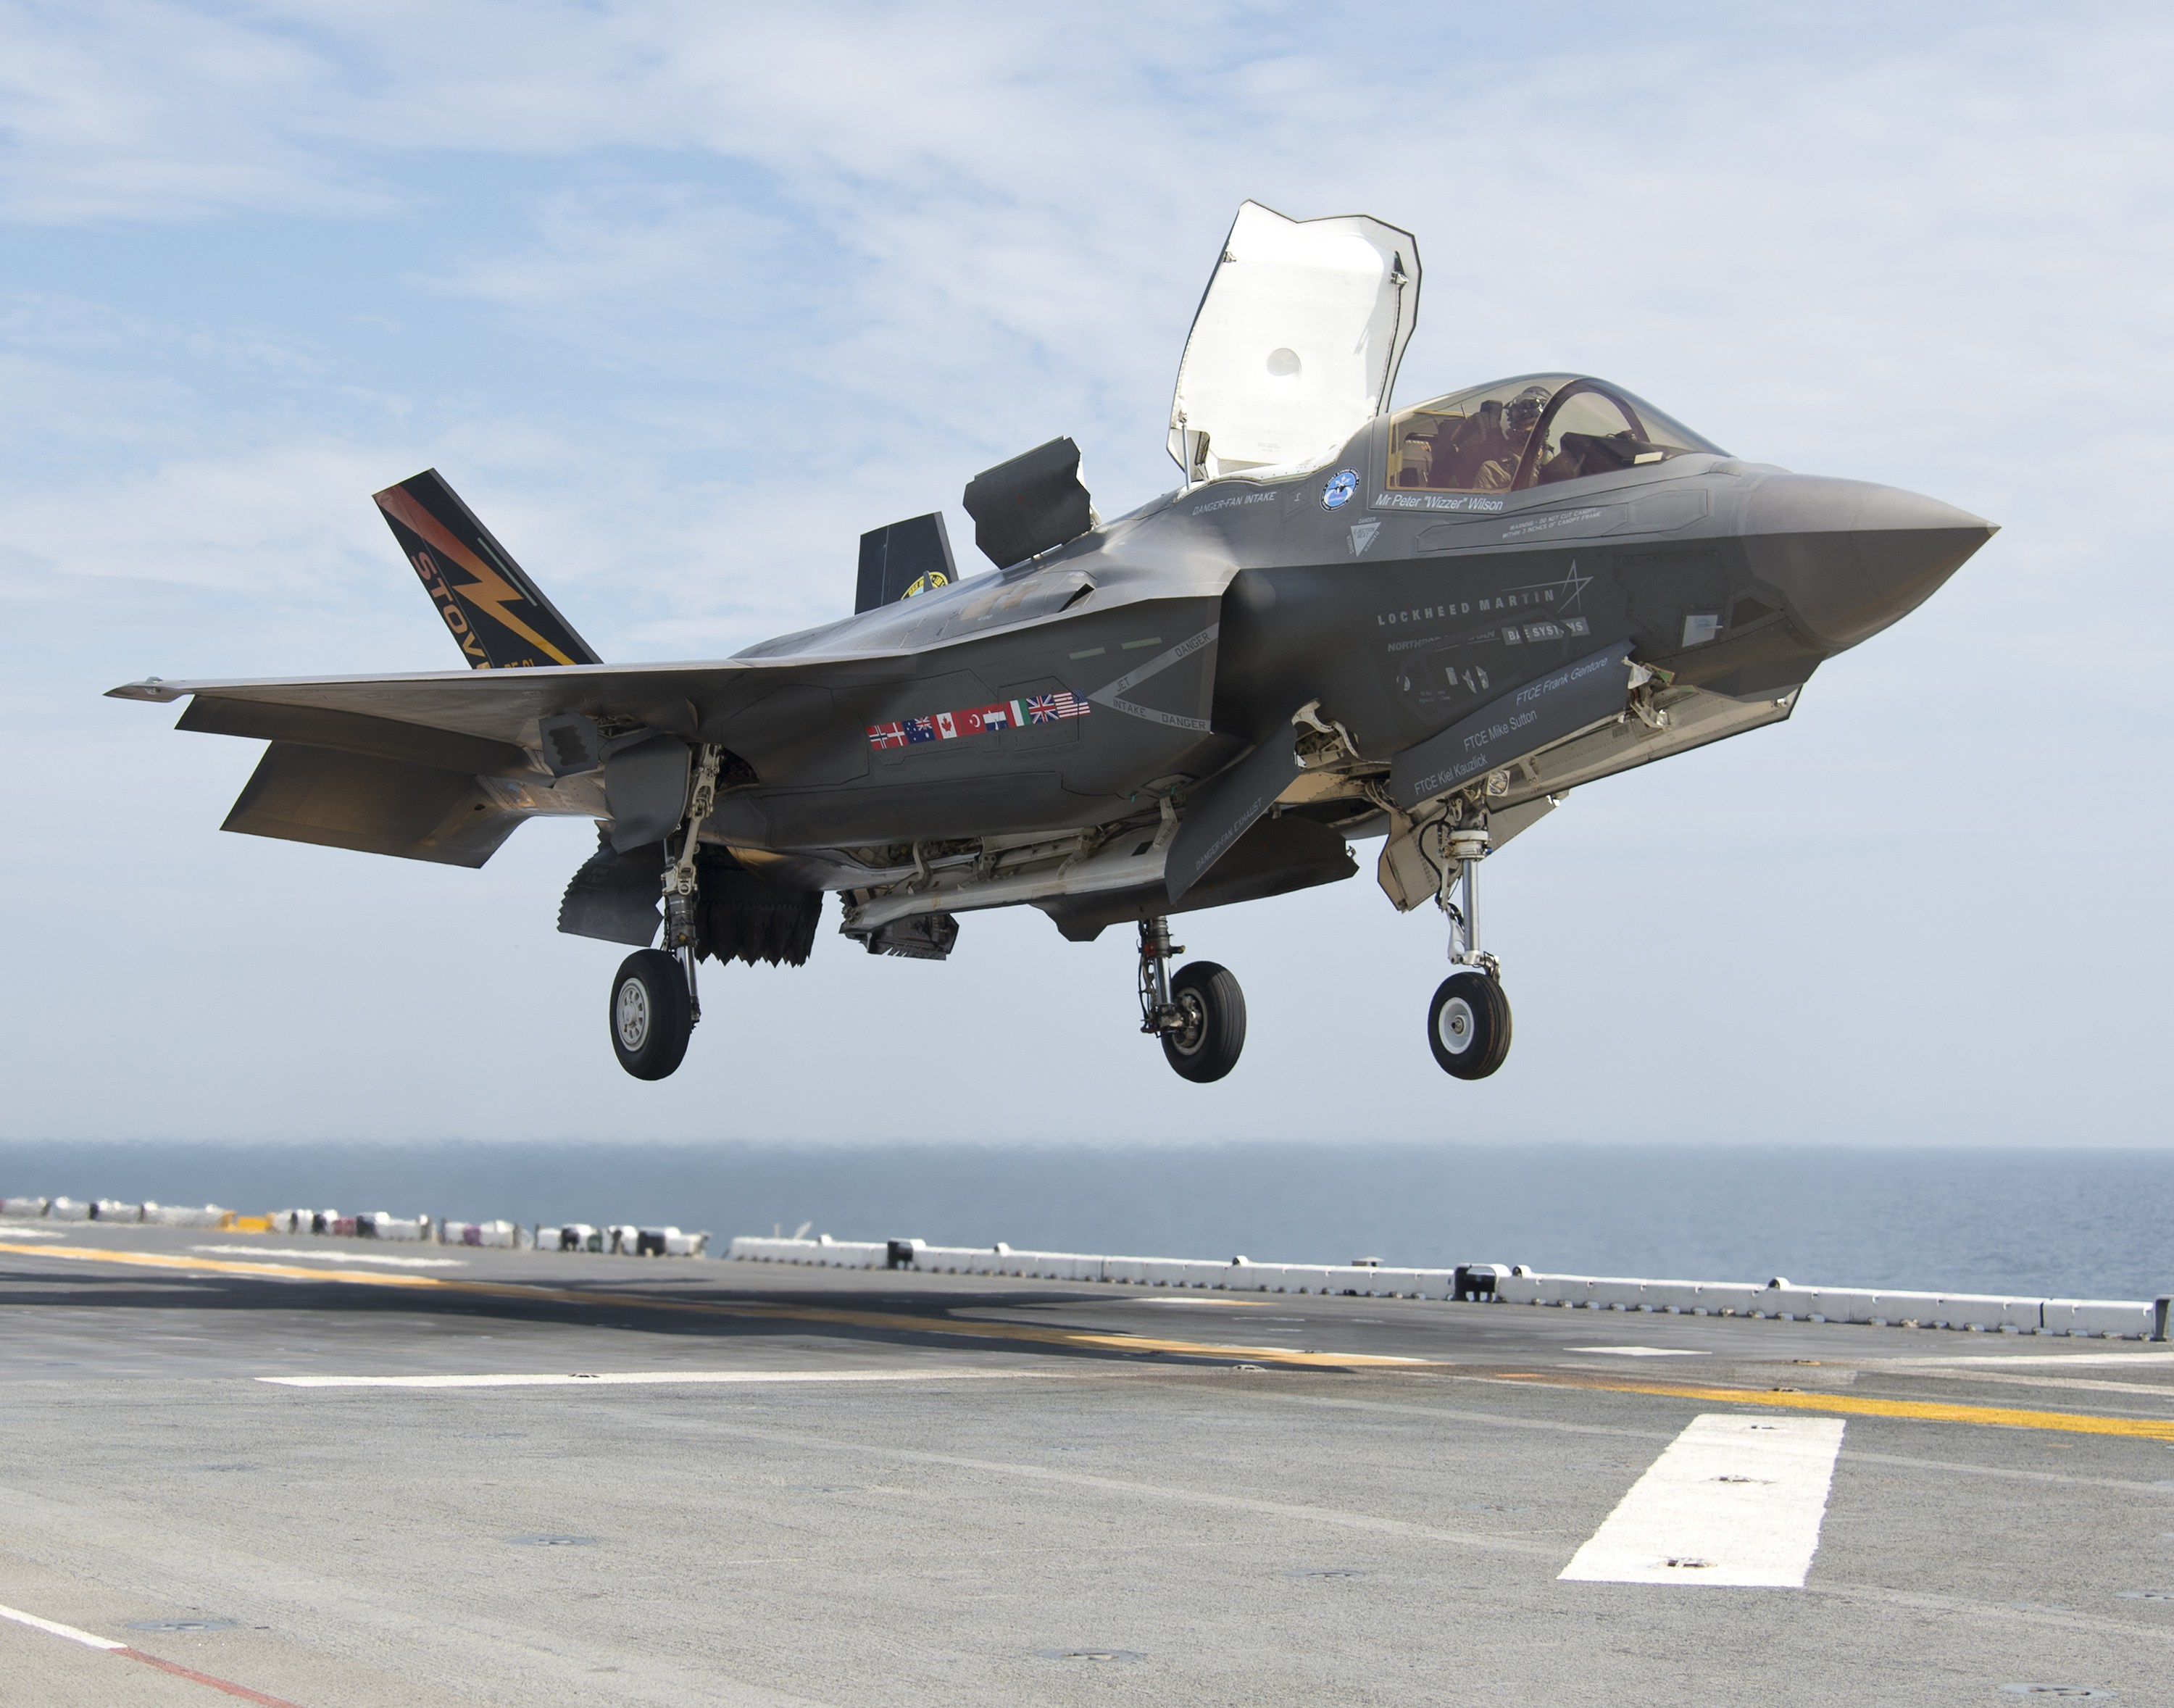 US Adversaries Closing Gap With American Aircraft Capabilities